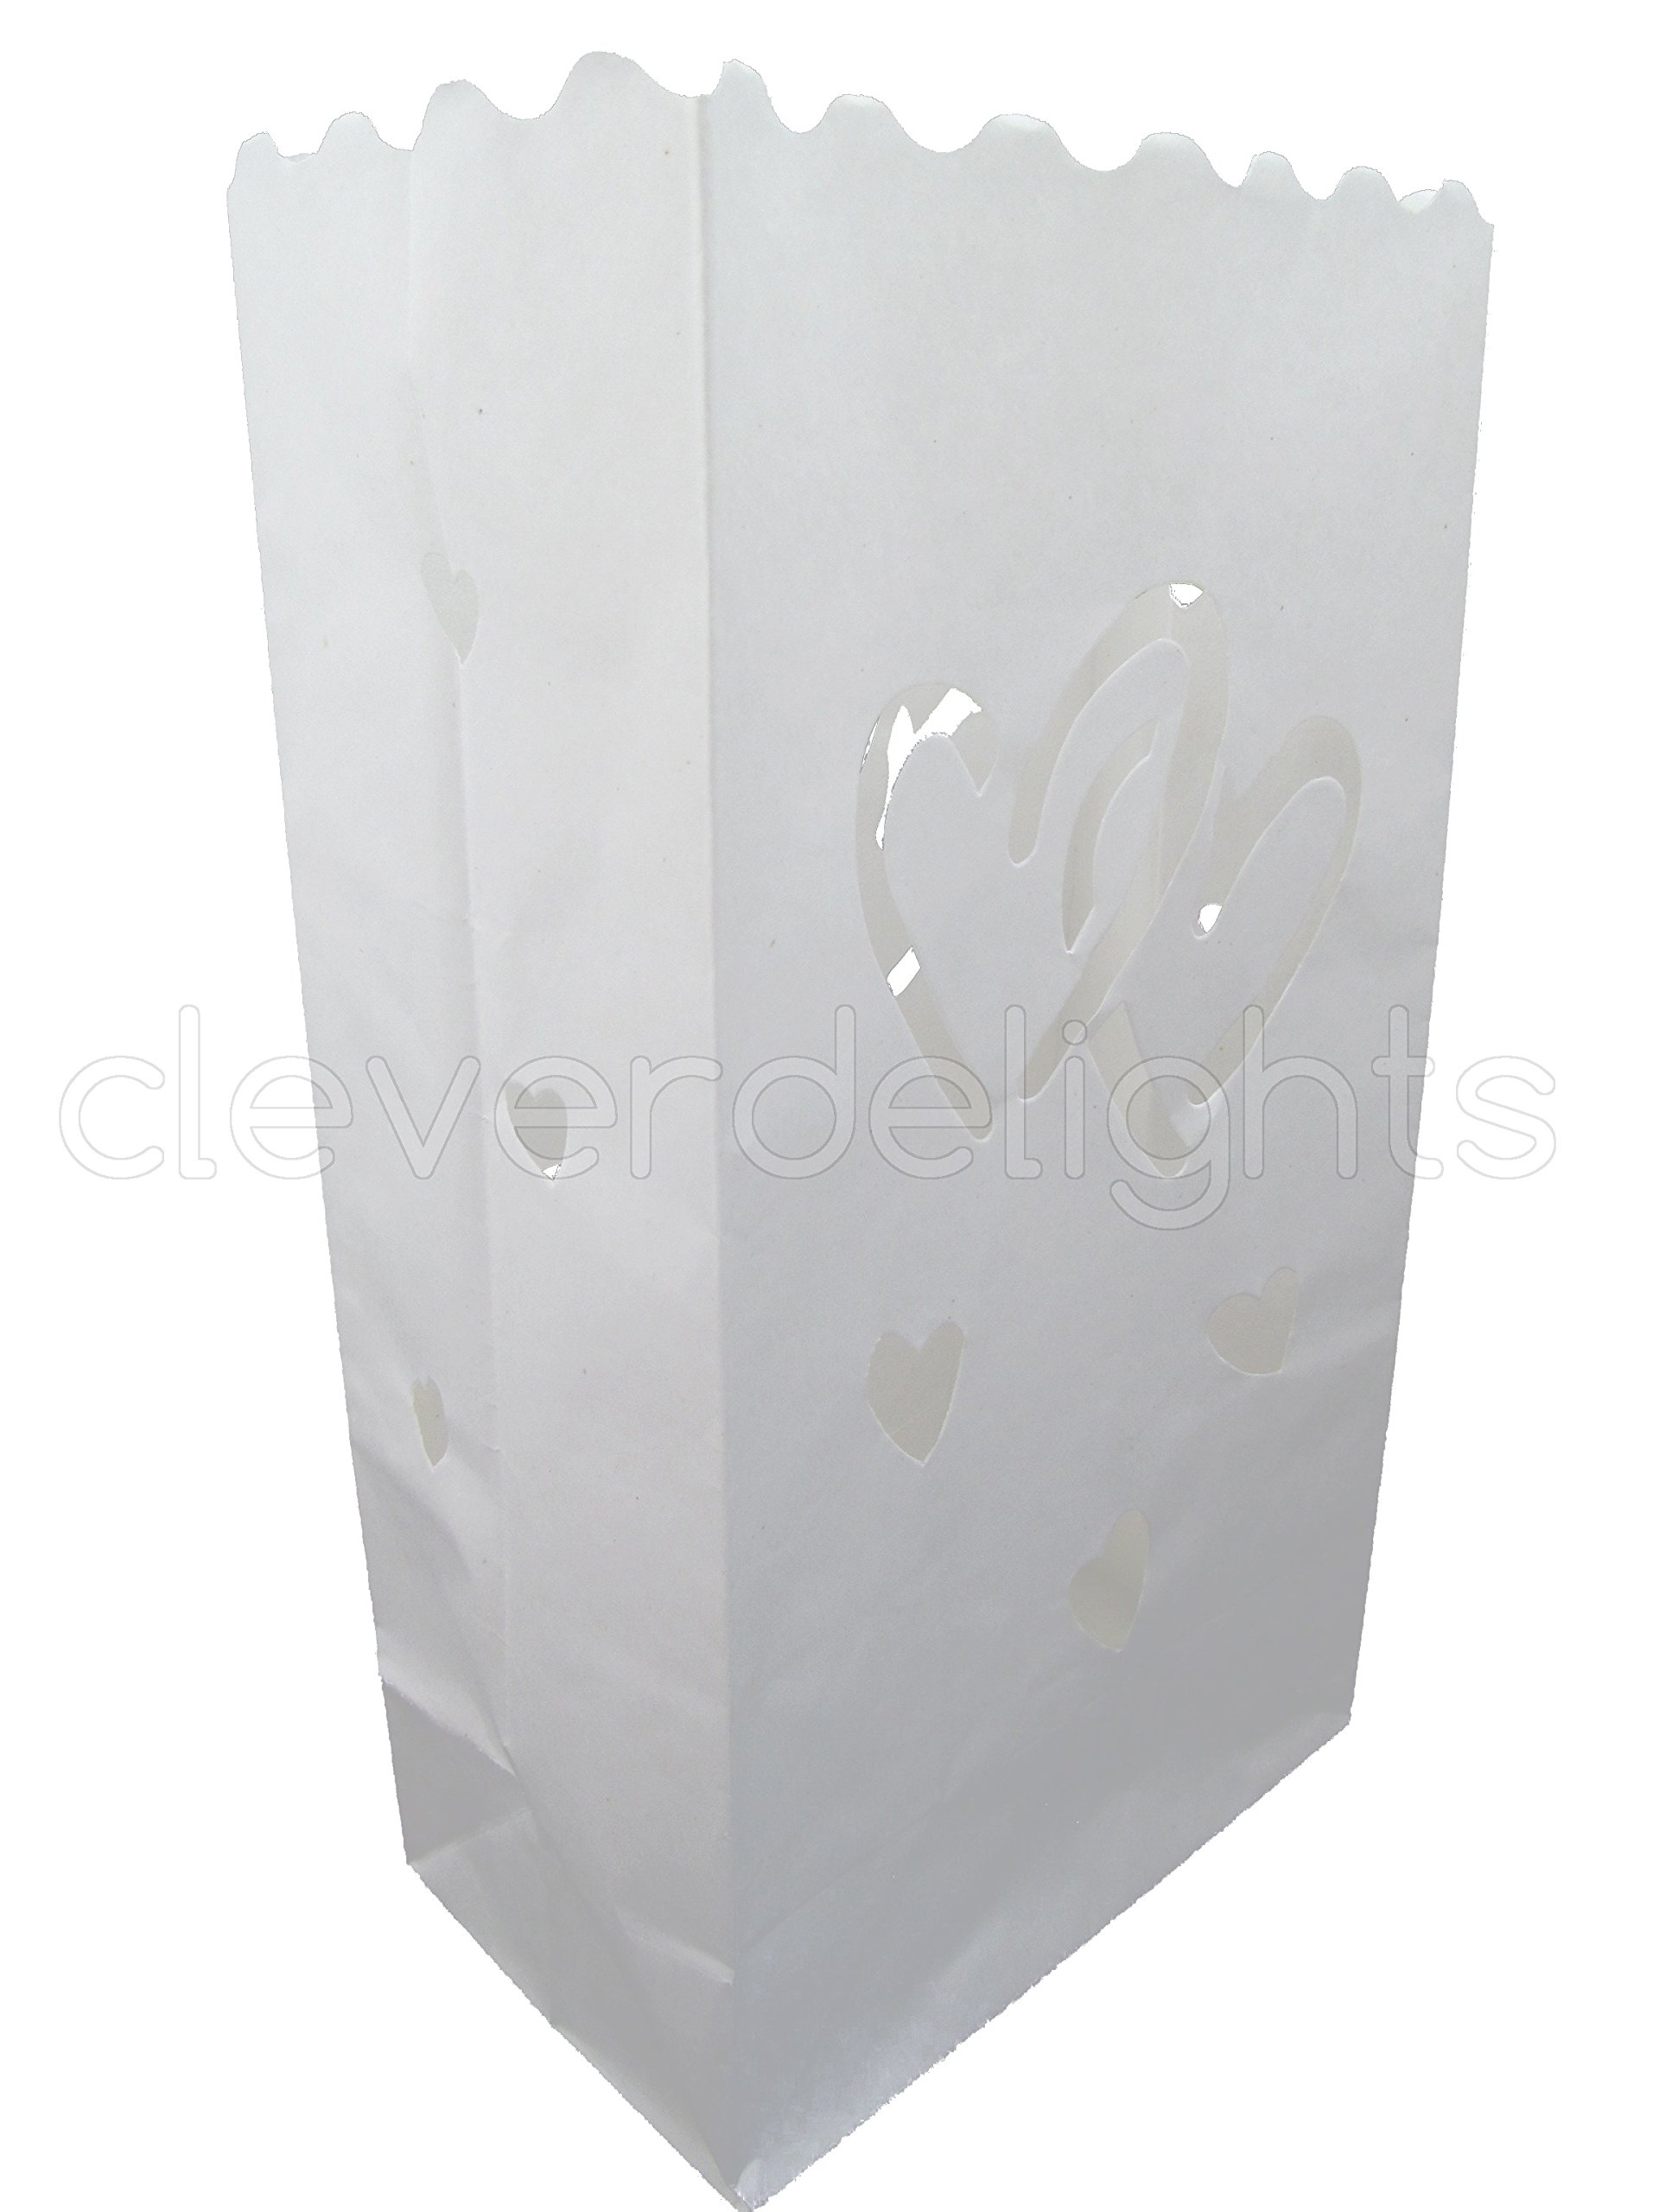 CleverDelights White Luminary Bags - 50 Count - Interlocking Hearts Design - Wedding, Reception, Party and Event Decor - Flame Resistant Paper - Luminaria